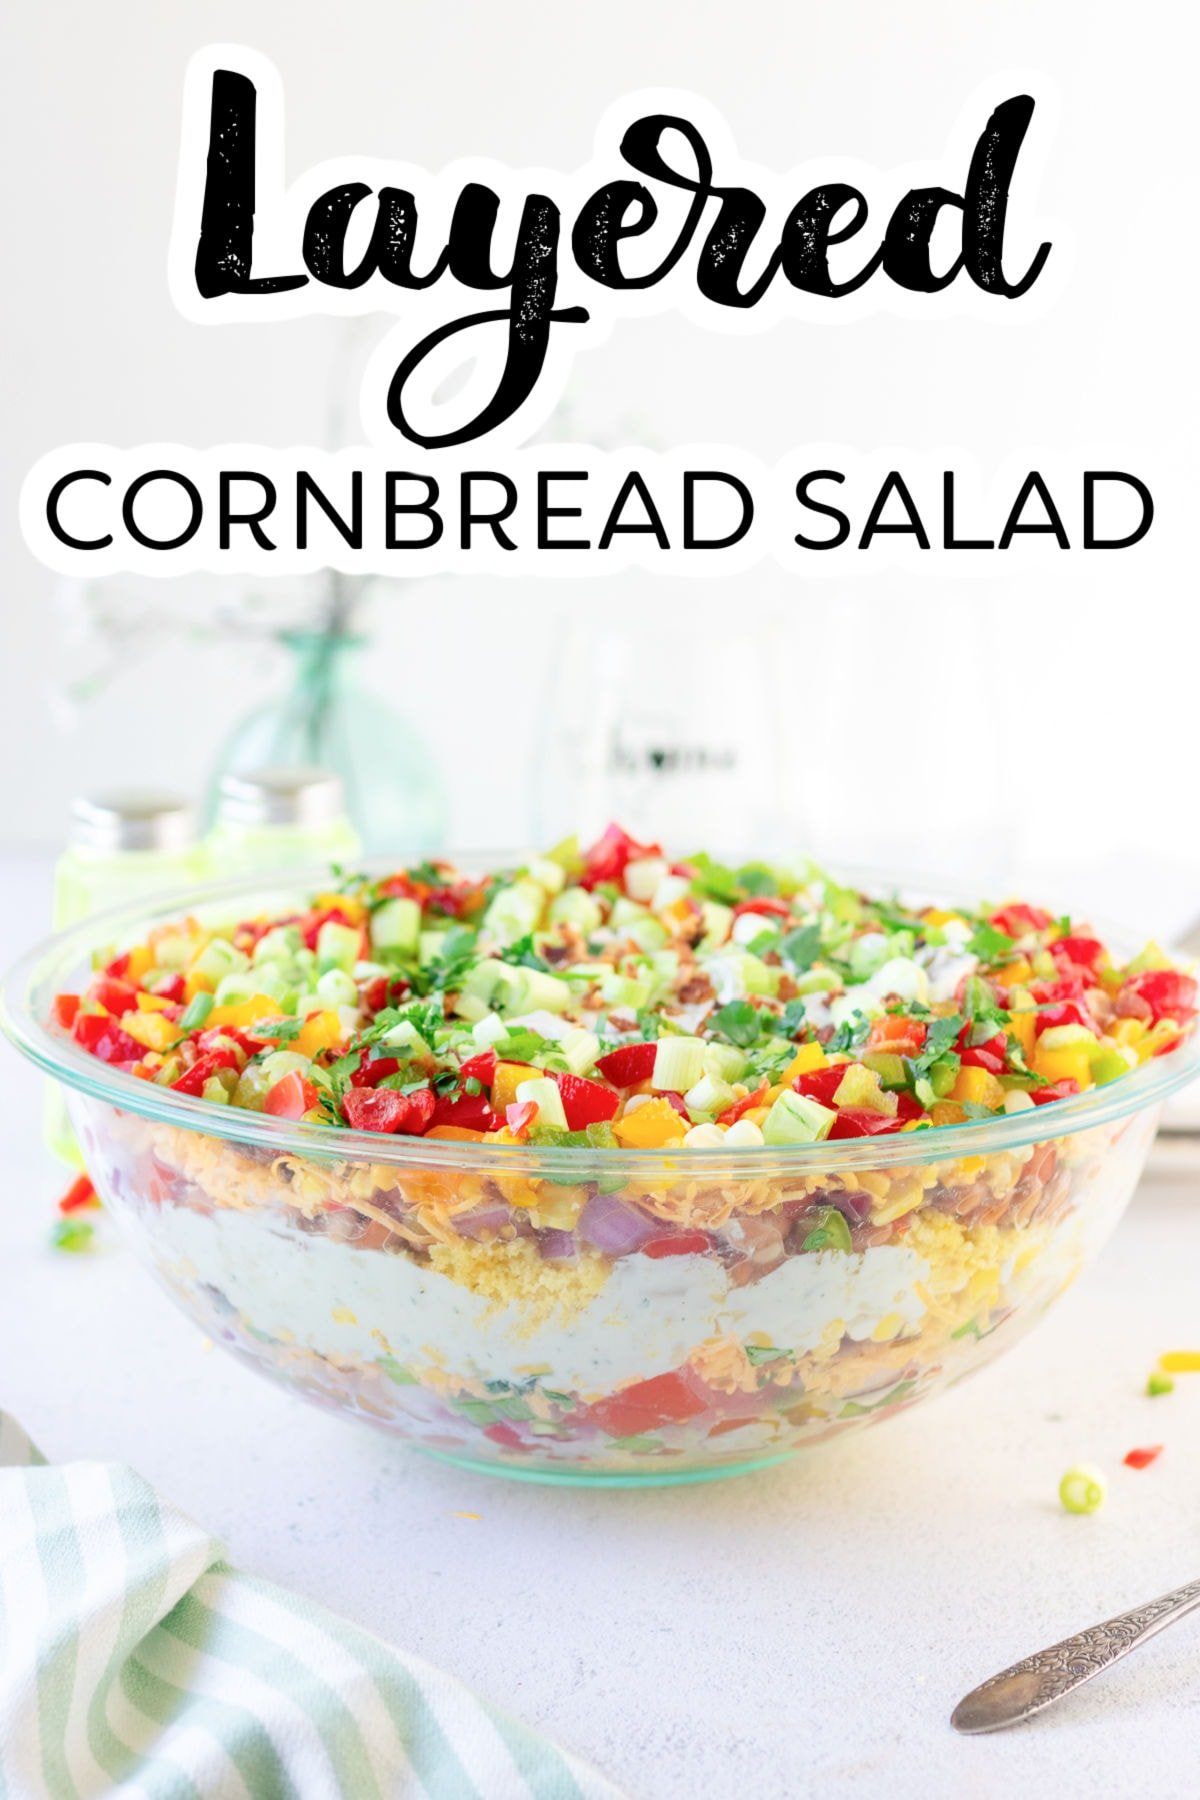 Title image for cornbread salad recipe with a text overlay.